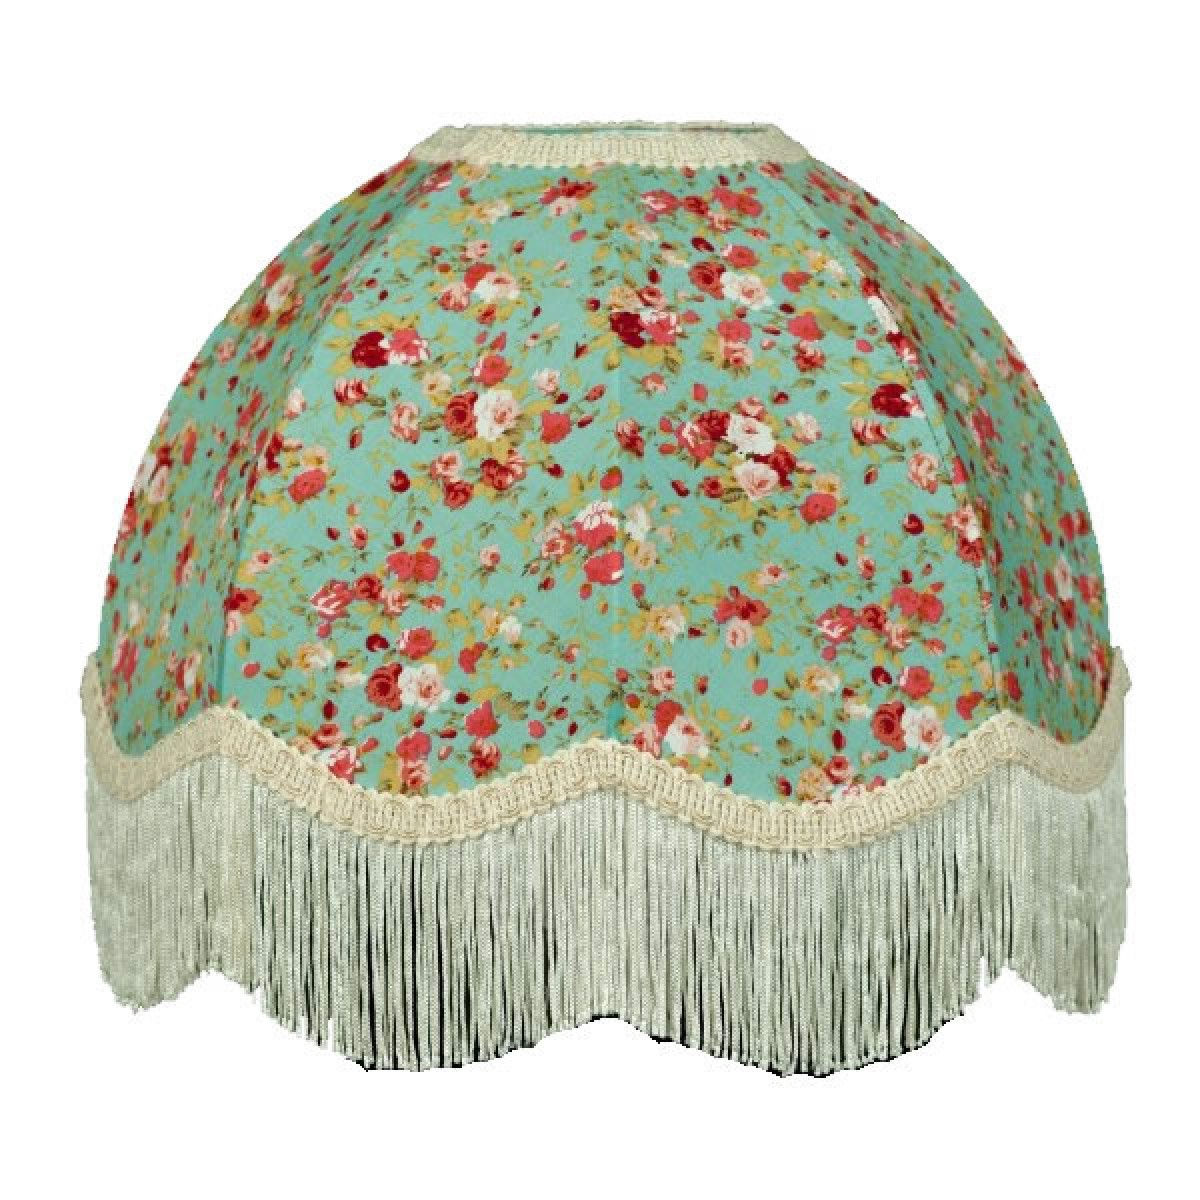 Green Floral Lamp Shade : Green floral dome lampshade